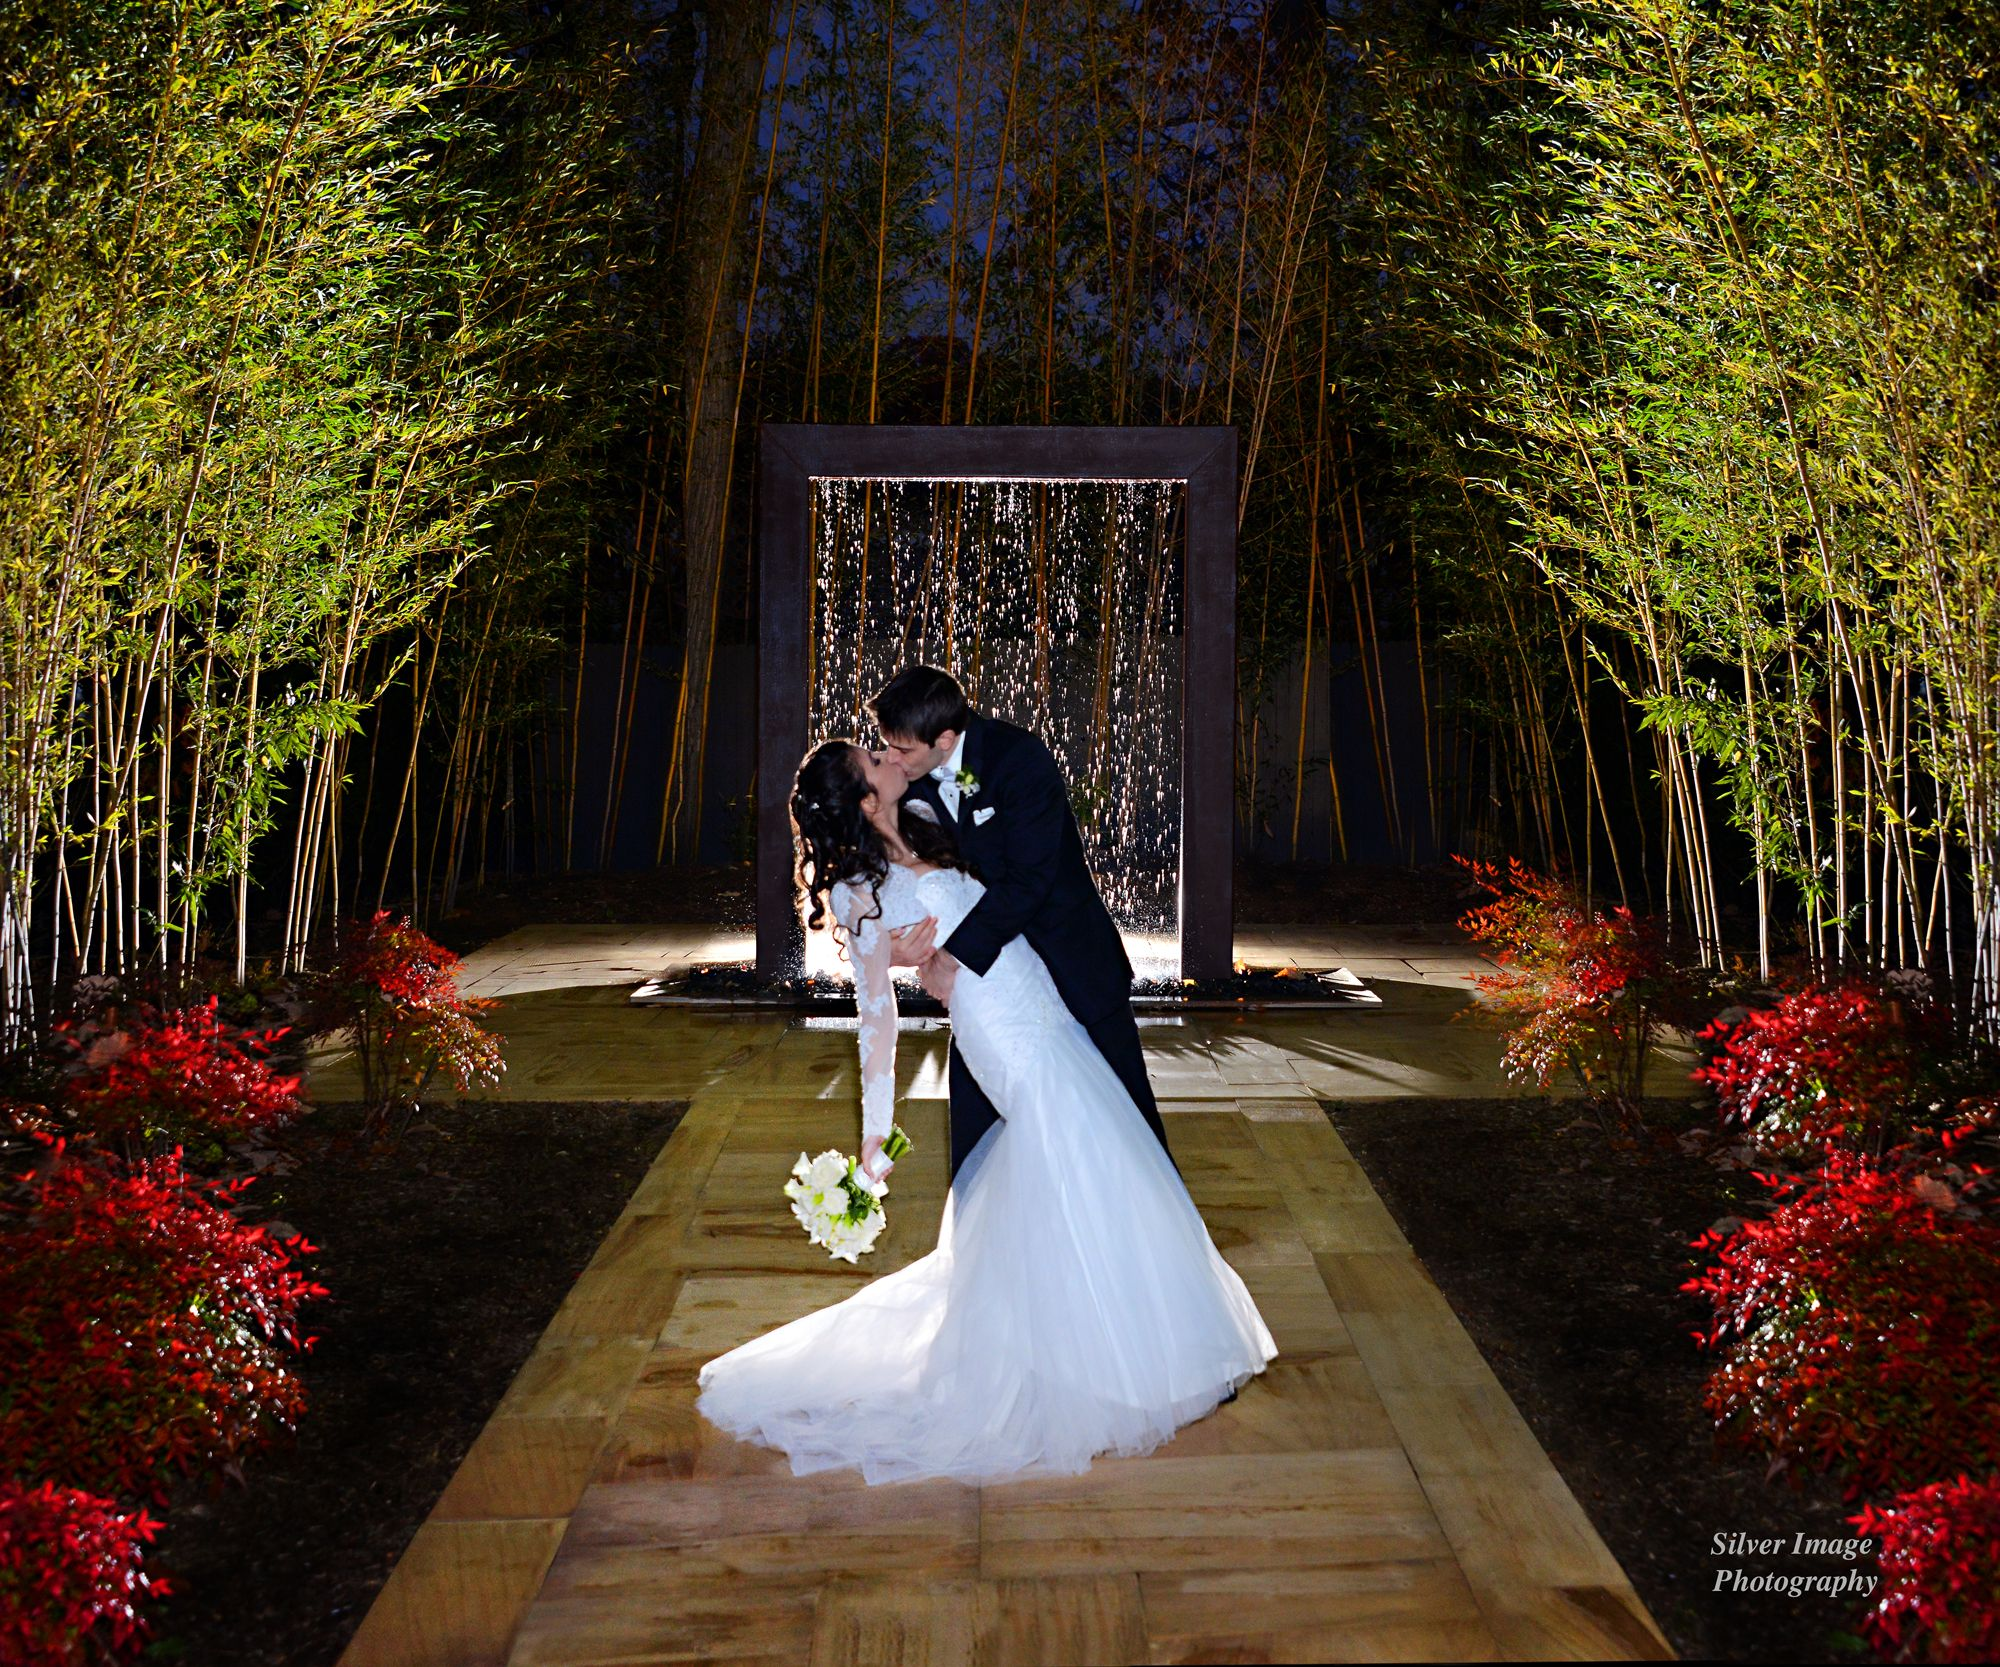 Bamboo garden at the end of the fall auletto caterers south bamboo garden at the end of the fall auletto caterers south jersey wedding venue junglespirit Choice Image